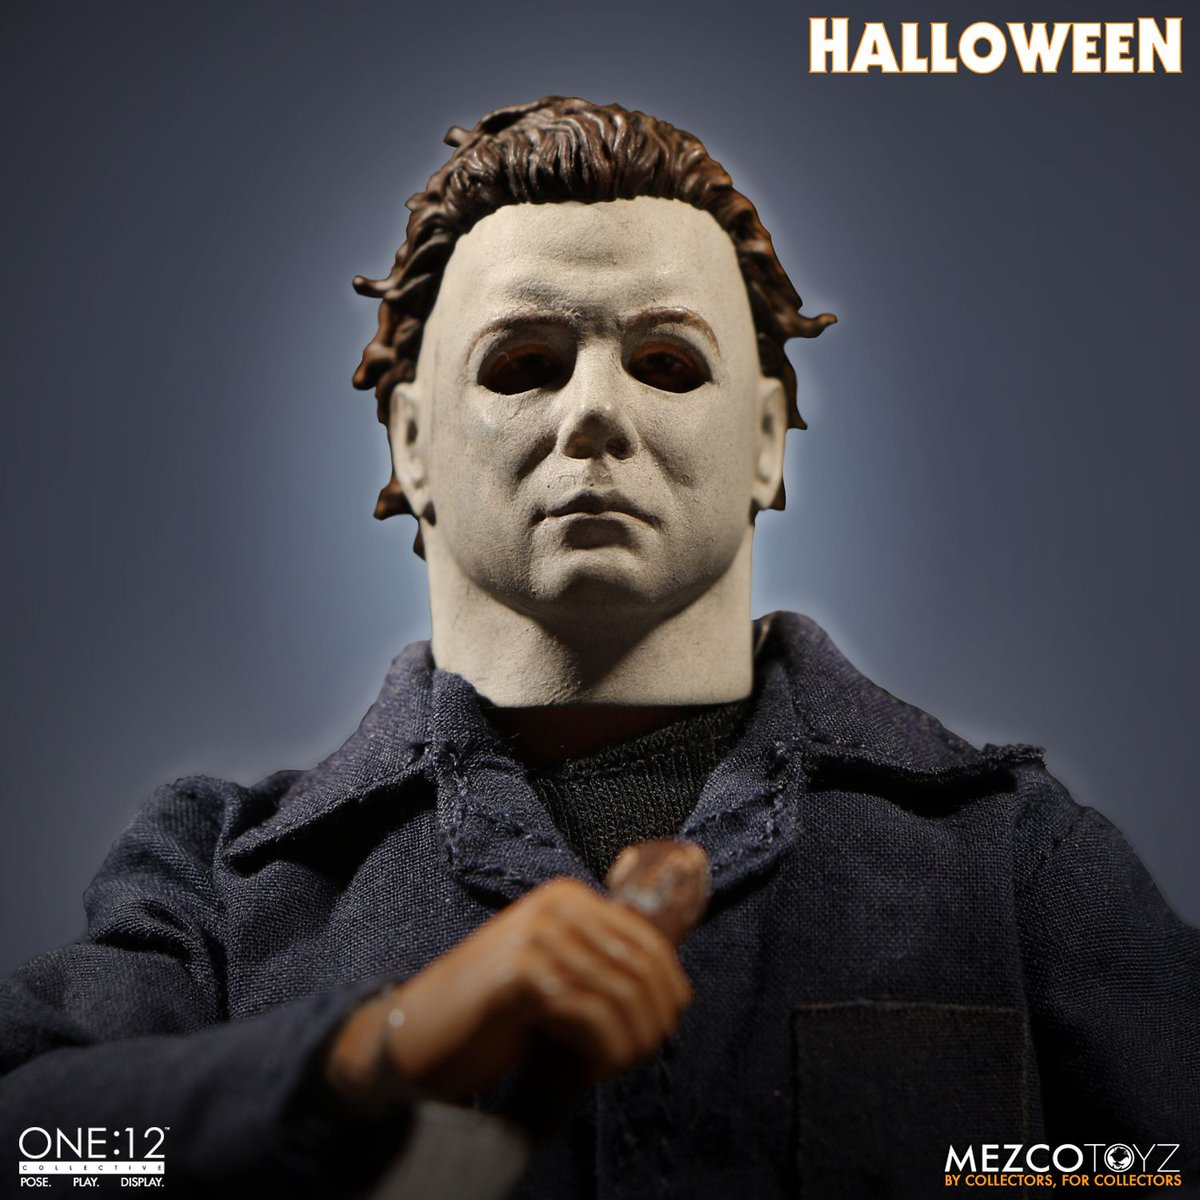 Available for Pre-order from @mezcotoyz The ONE:12 Collective #MichaelMyers #Halloween Figure. #MyersMonday    https://t.co/Eb4W9gNVGJ https://t.co/5Jmv6NA4ep